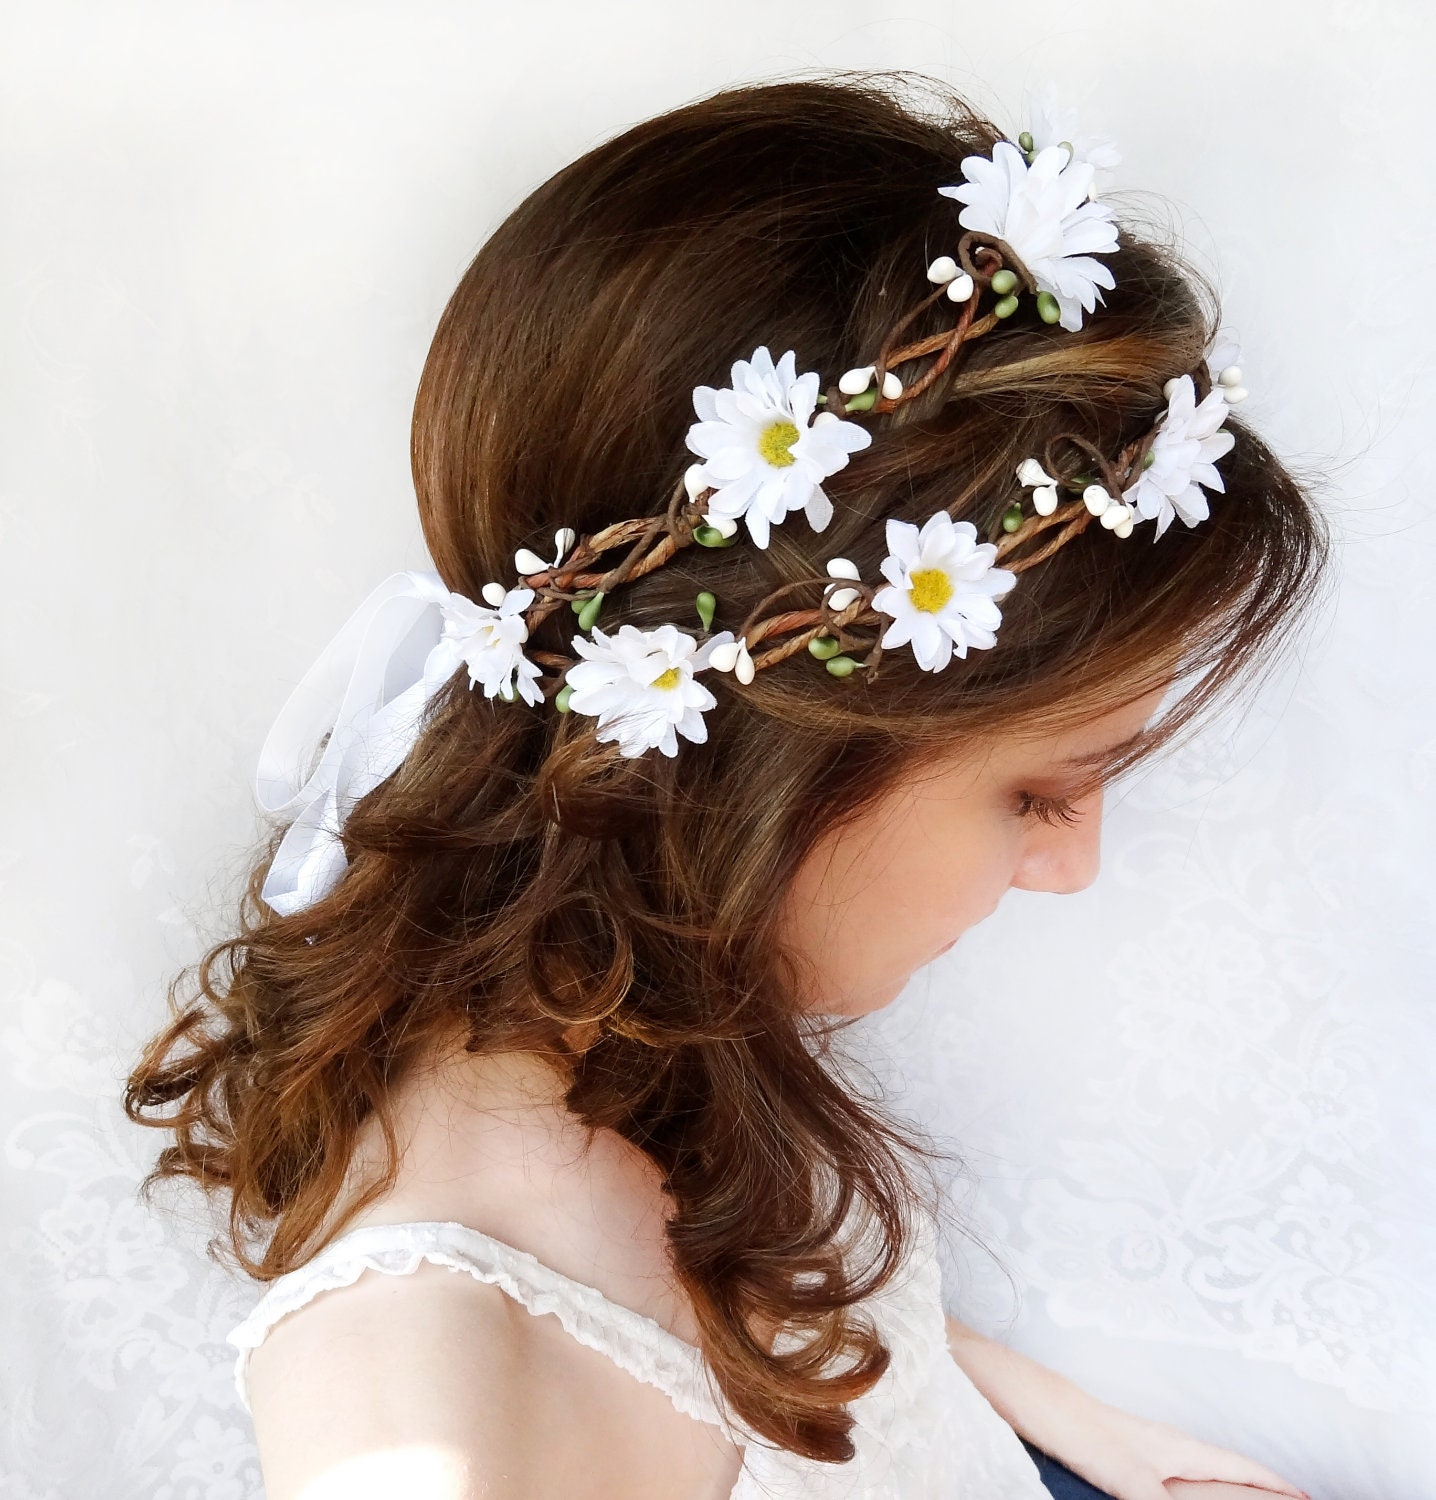 Flower crown wedding daisy headband daisy flower crown for Design accessoires